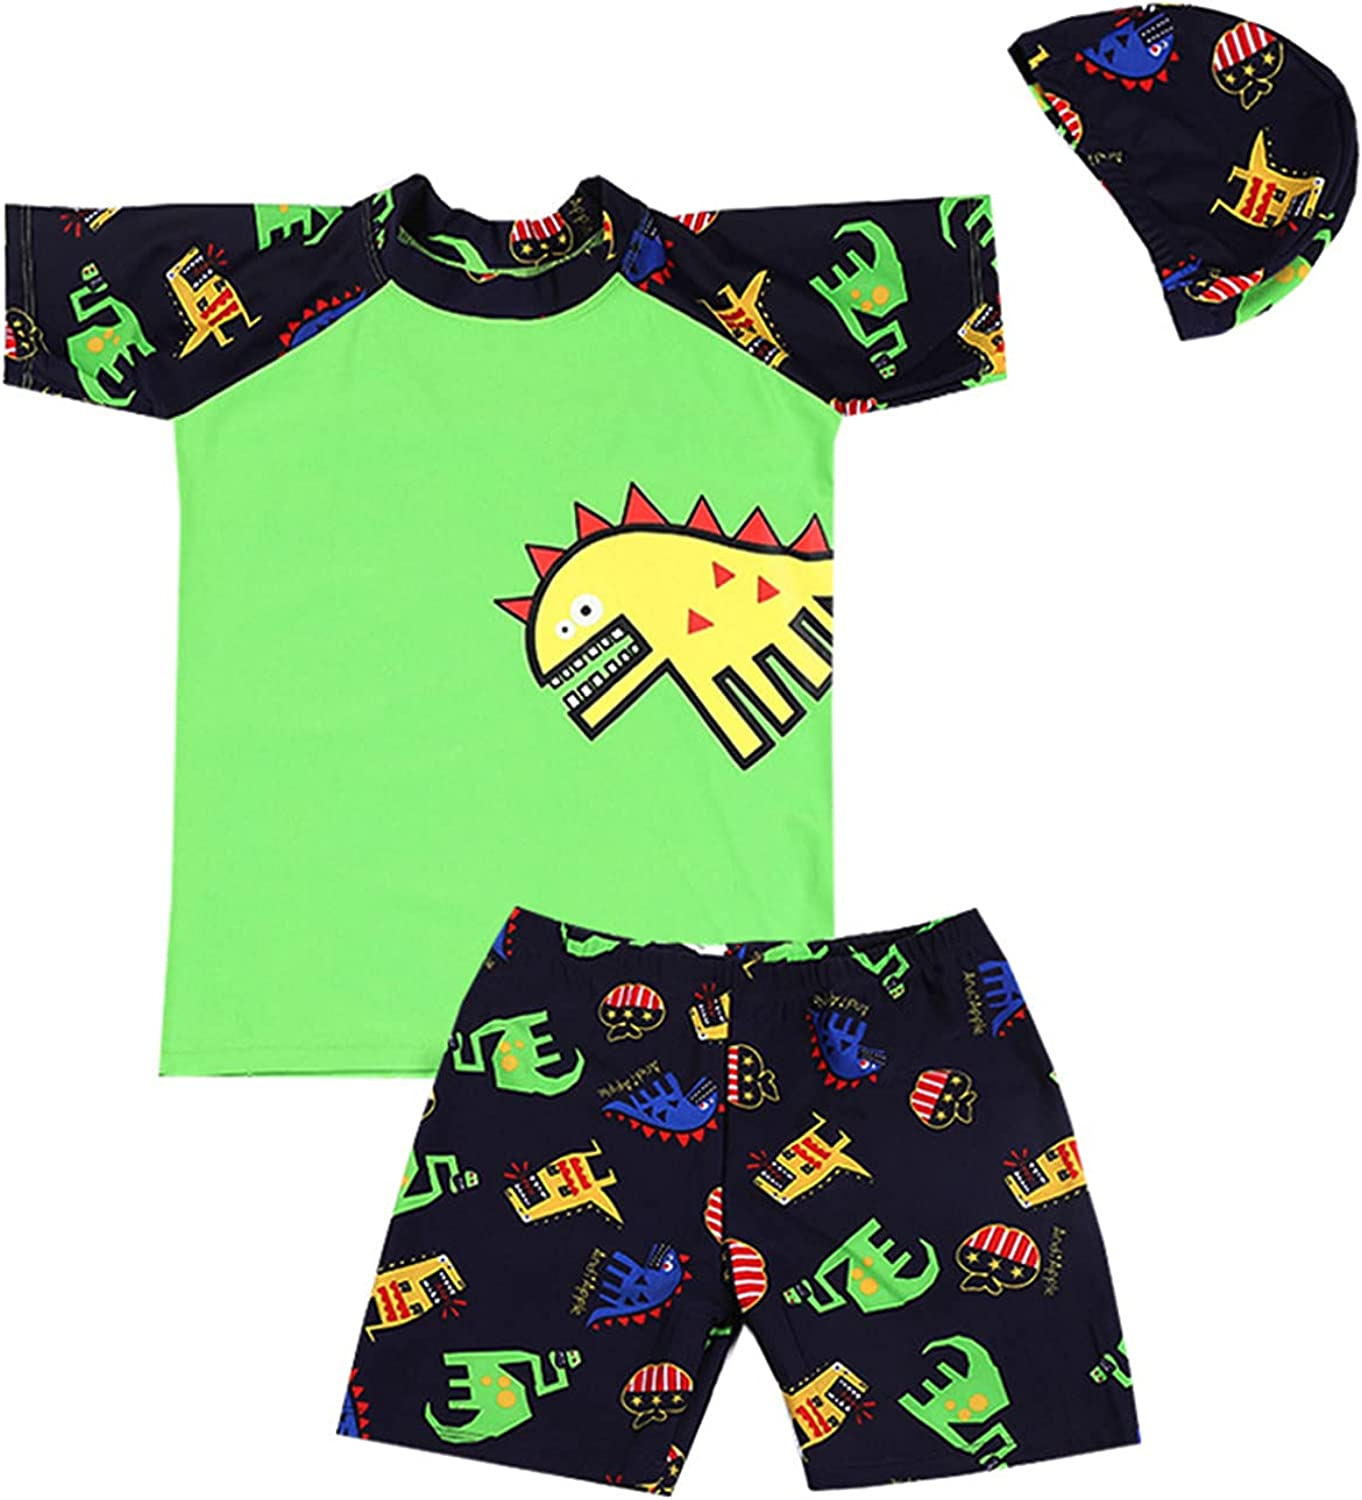 Boys Two Piece Swimsuit Dinosaur Bathing Suit Max Opening large release sale 55% OFF T Swim Rash Guards